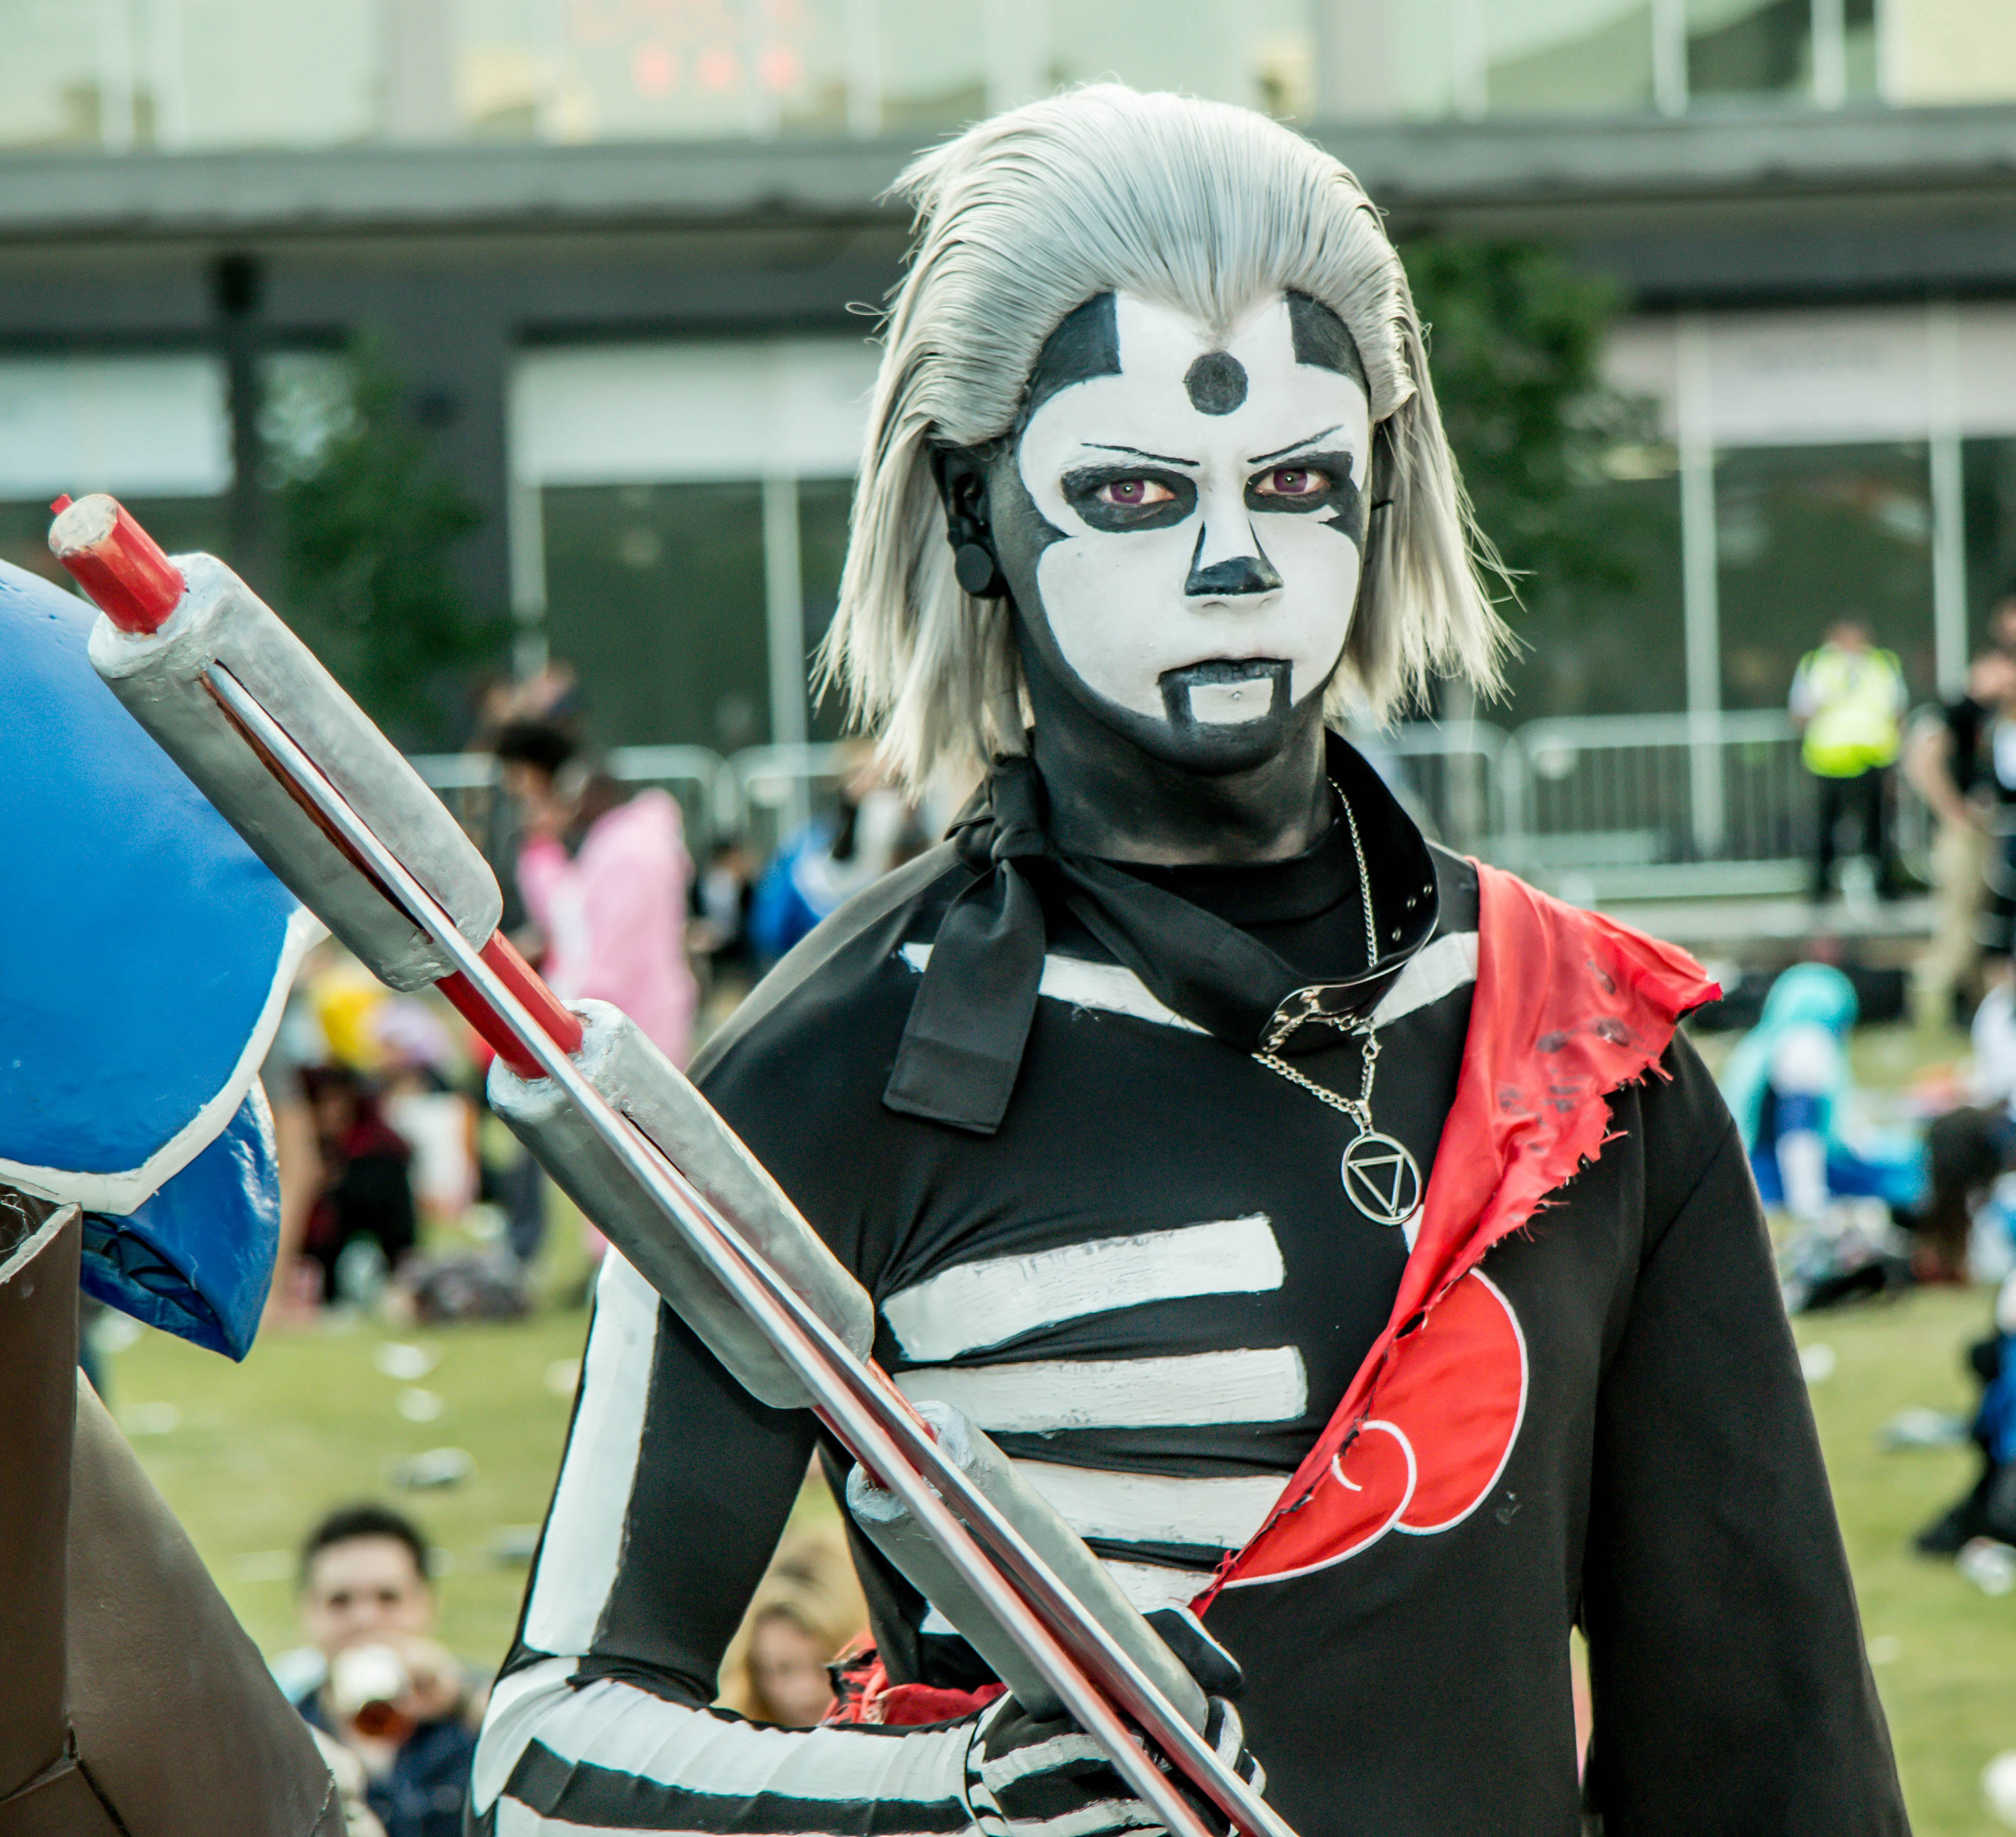 Image result for Hidan from Naruto